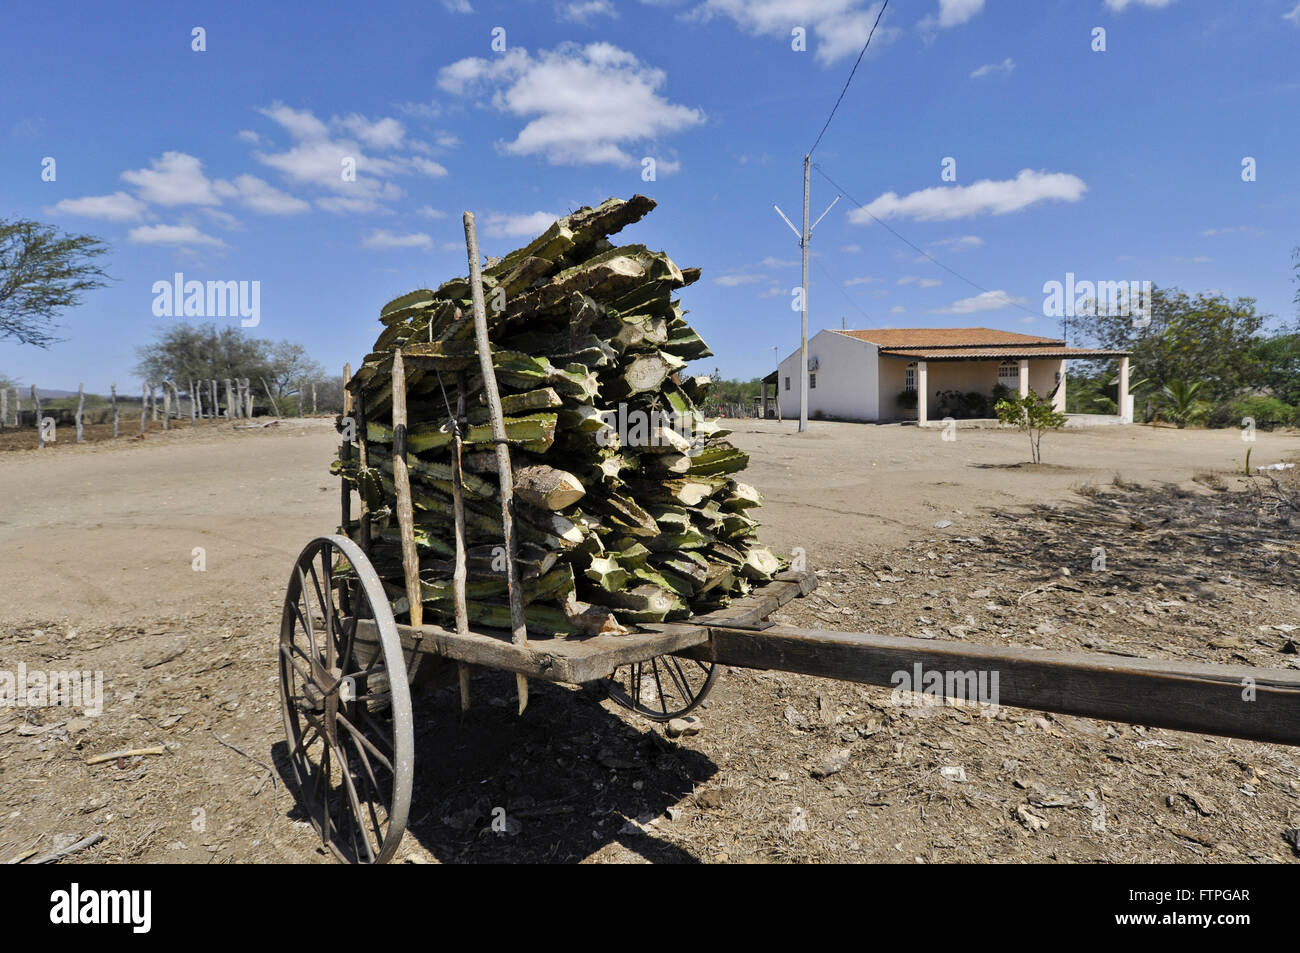 Carroca charged cactus to feed cattle on small farms - Stock Image